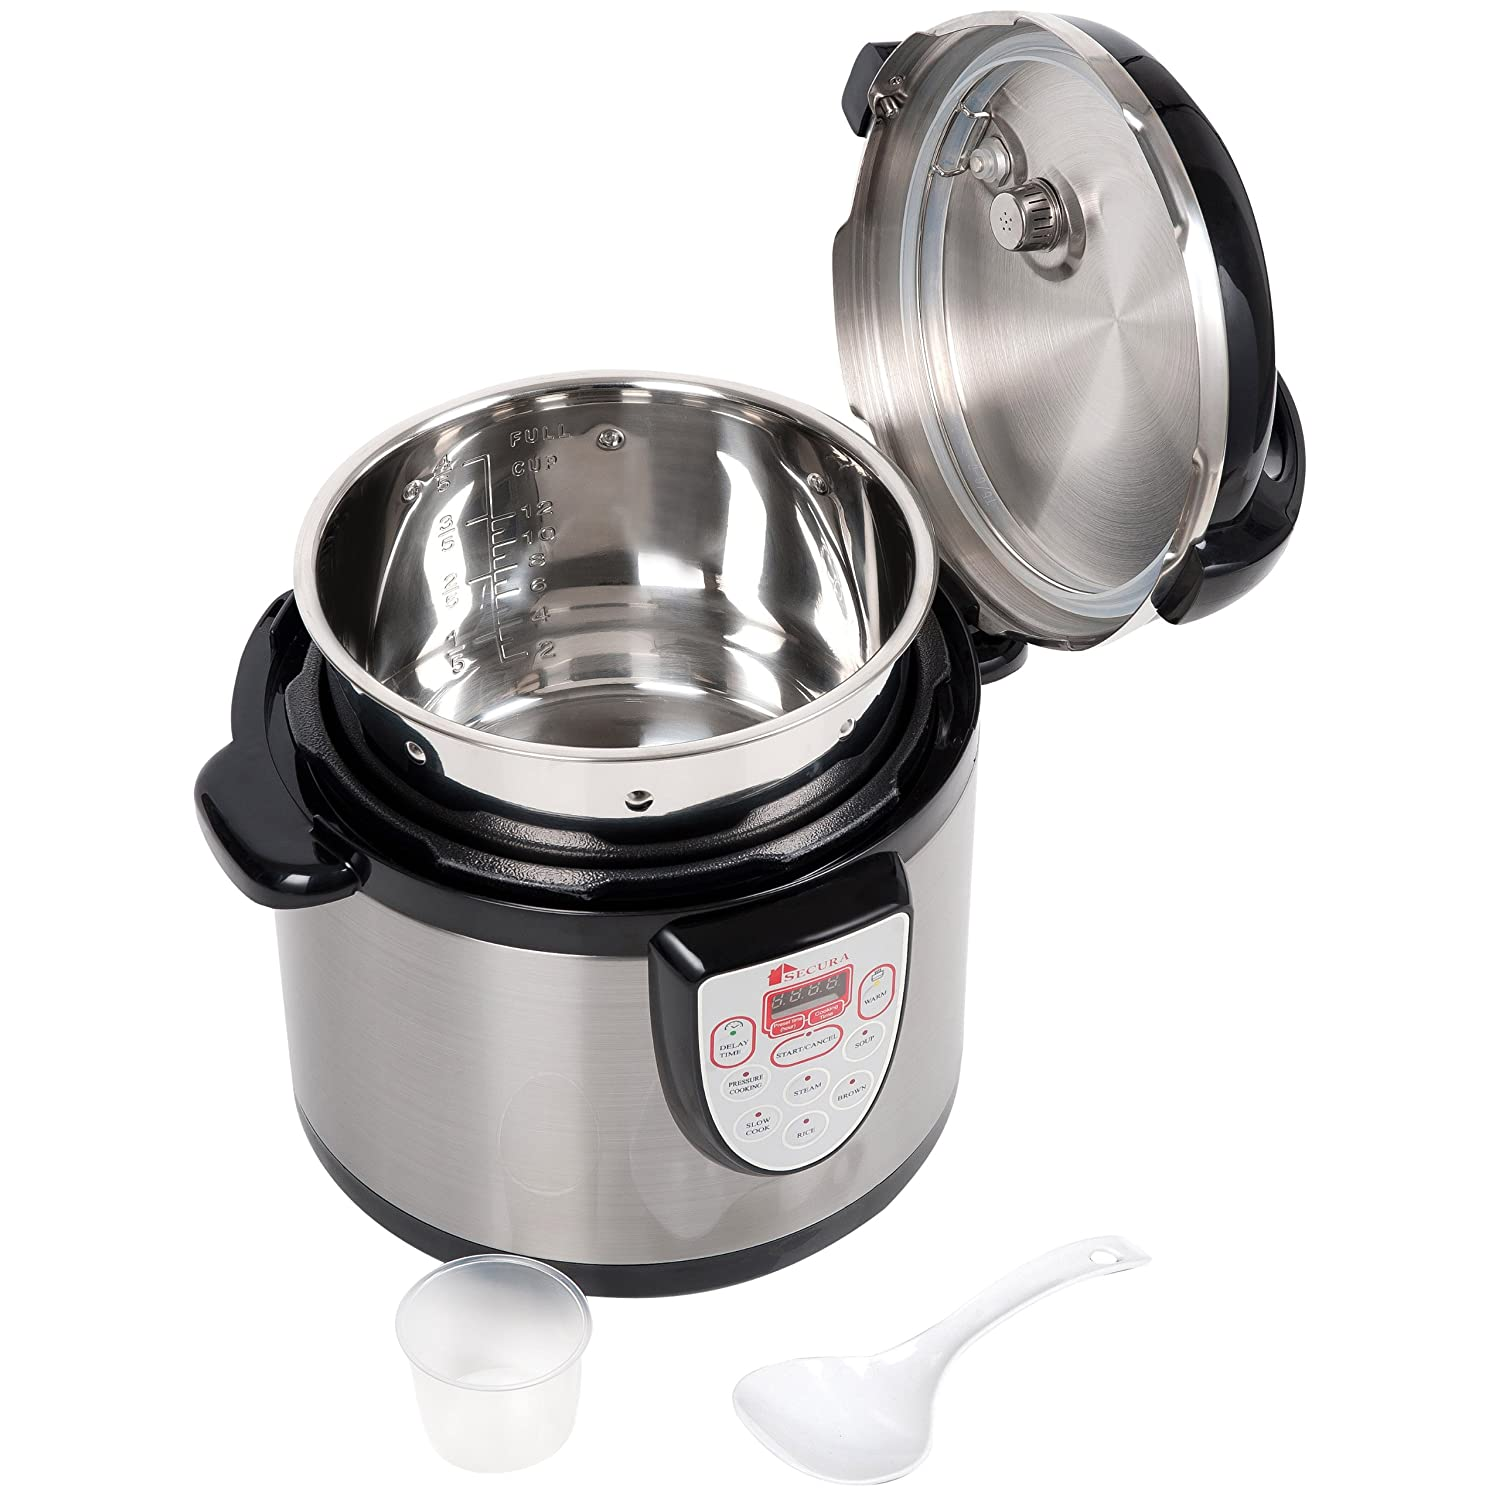 Secura Stainless Steel Cooking Pot